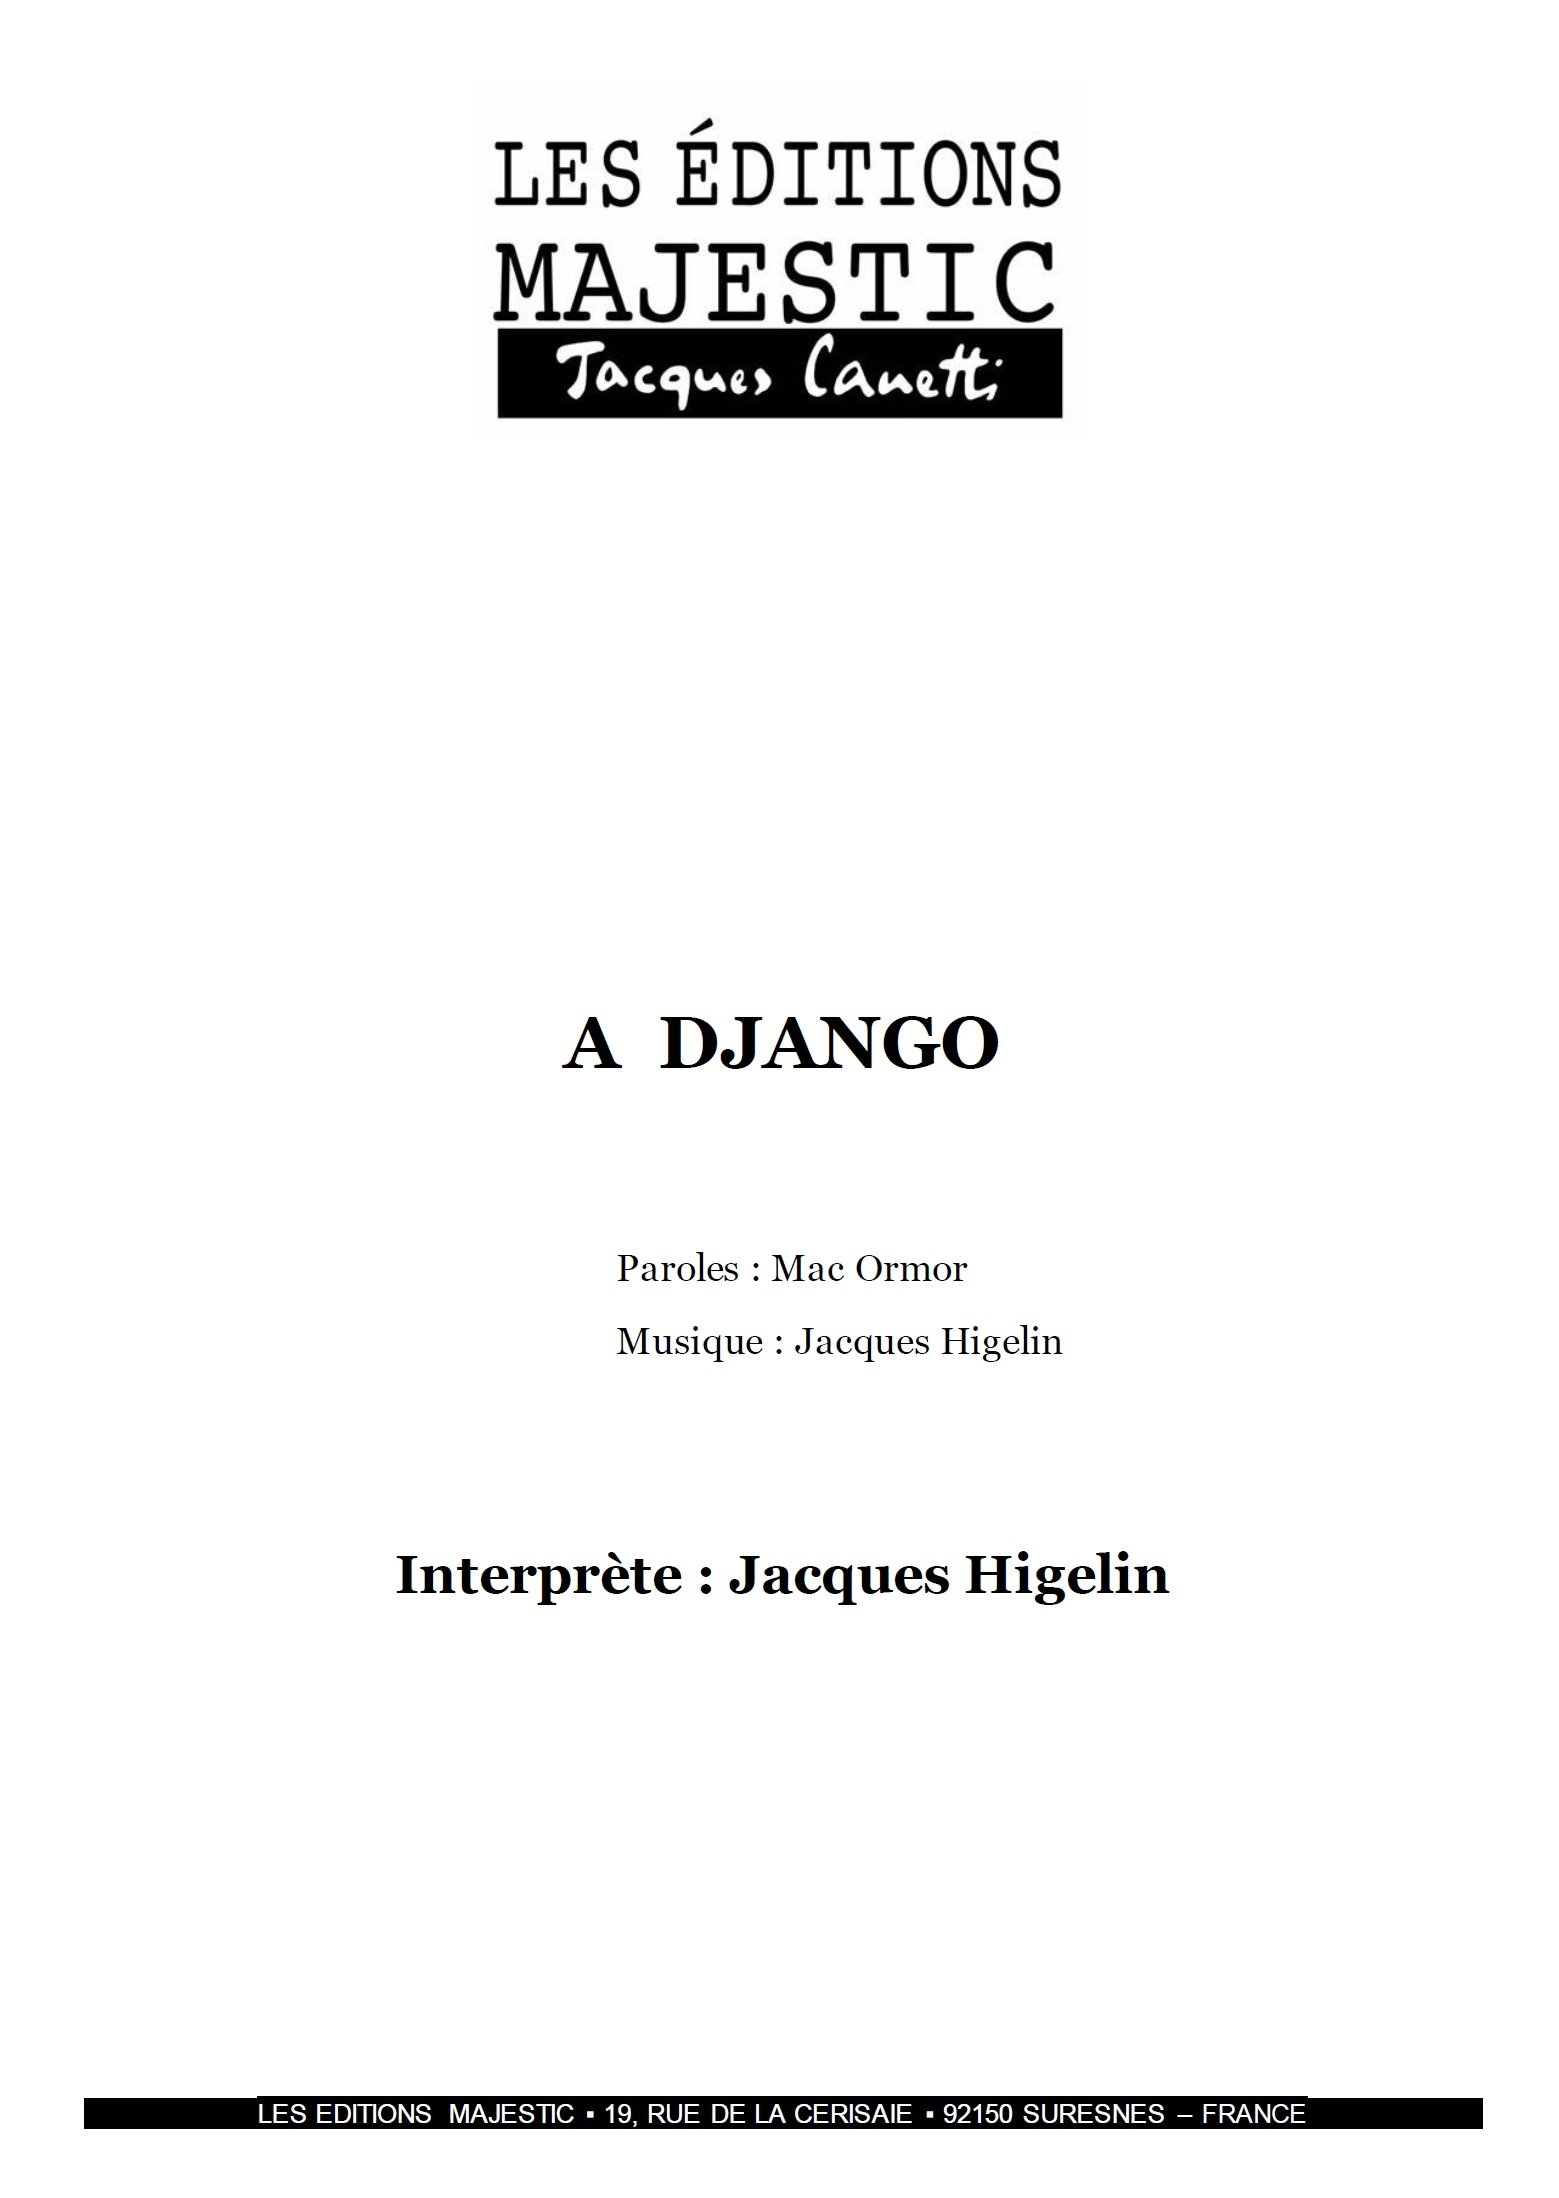 A Django - Jacques Higelin - Productions Jacques Canetti